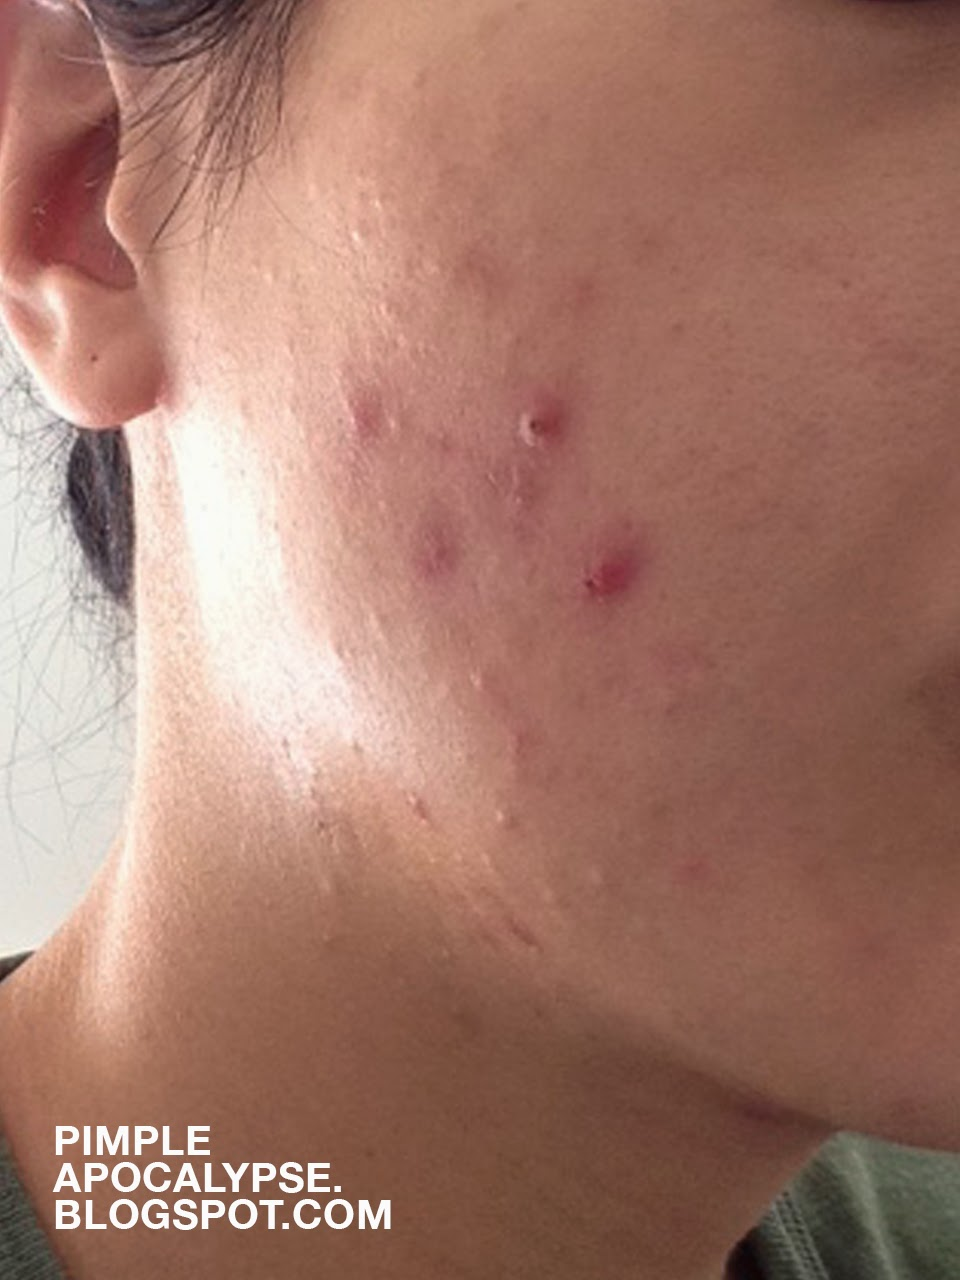 cystic acne, clogged pores, acne breakouts, allergic reaction